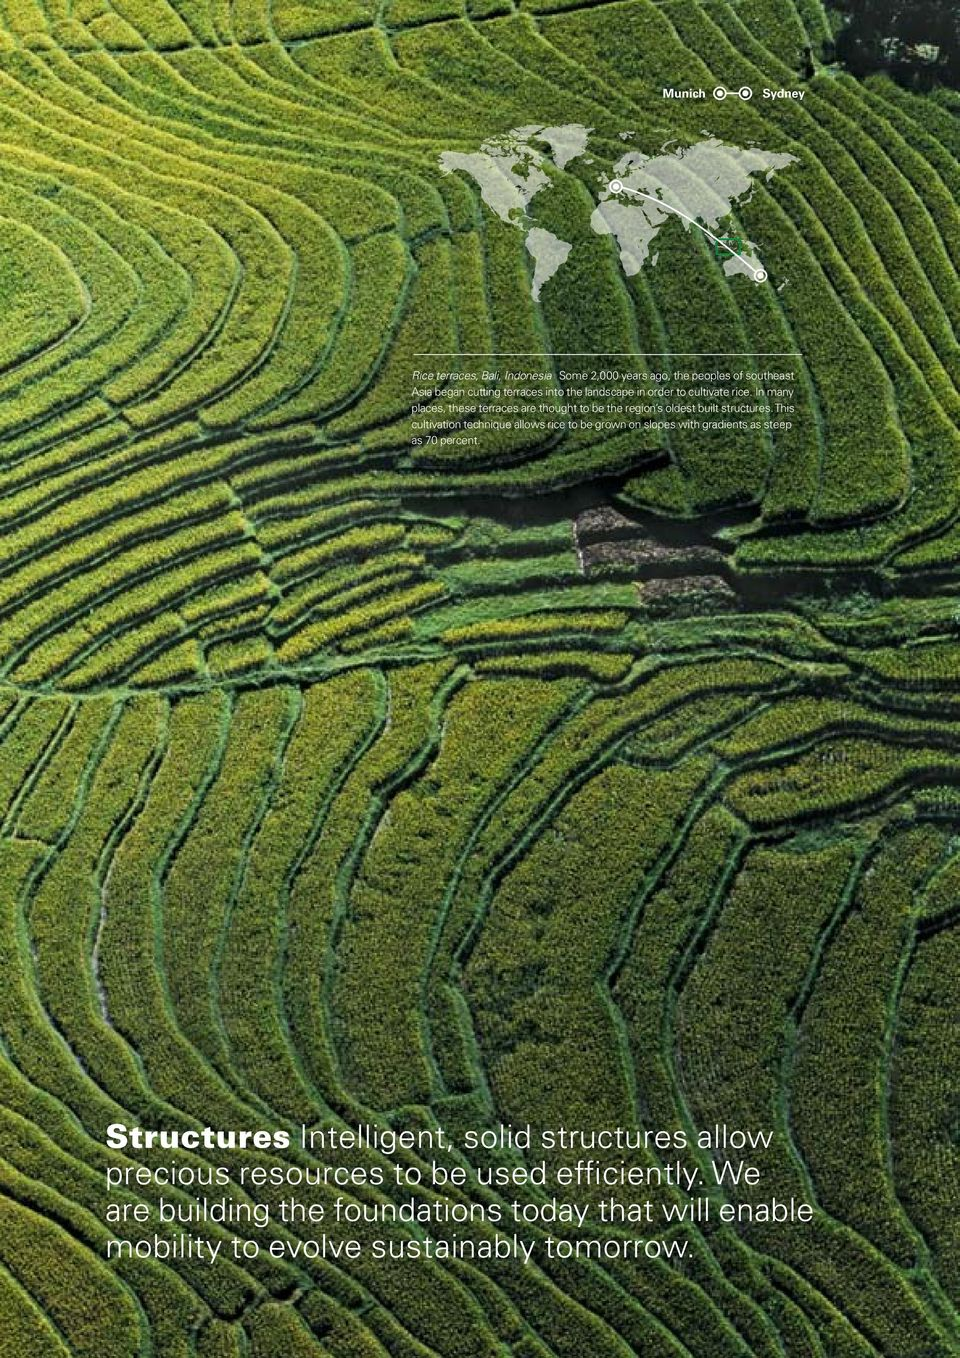 This cultivation technique allows rice to be grown on slopes with gradients as steep as 70 percent.